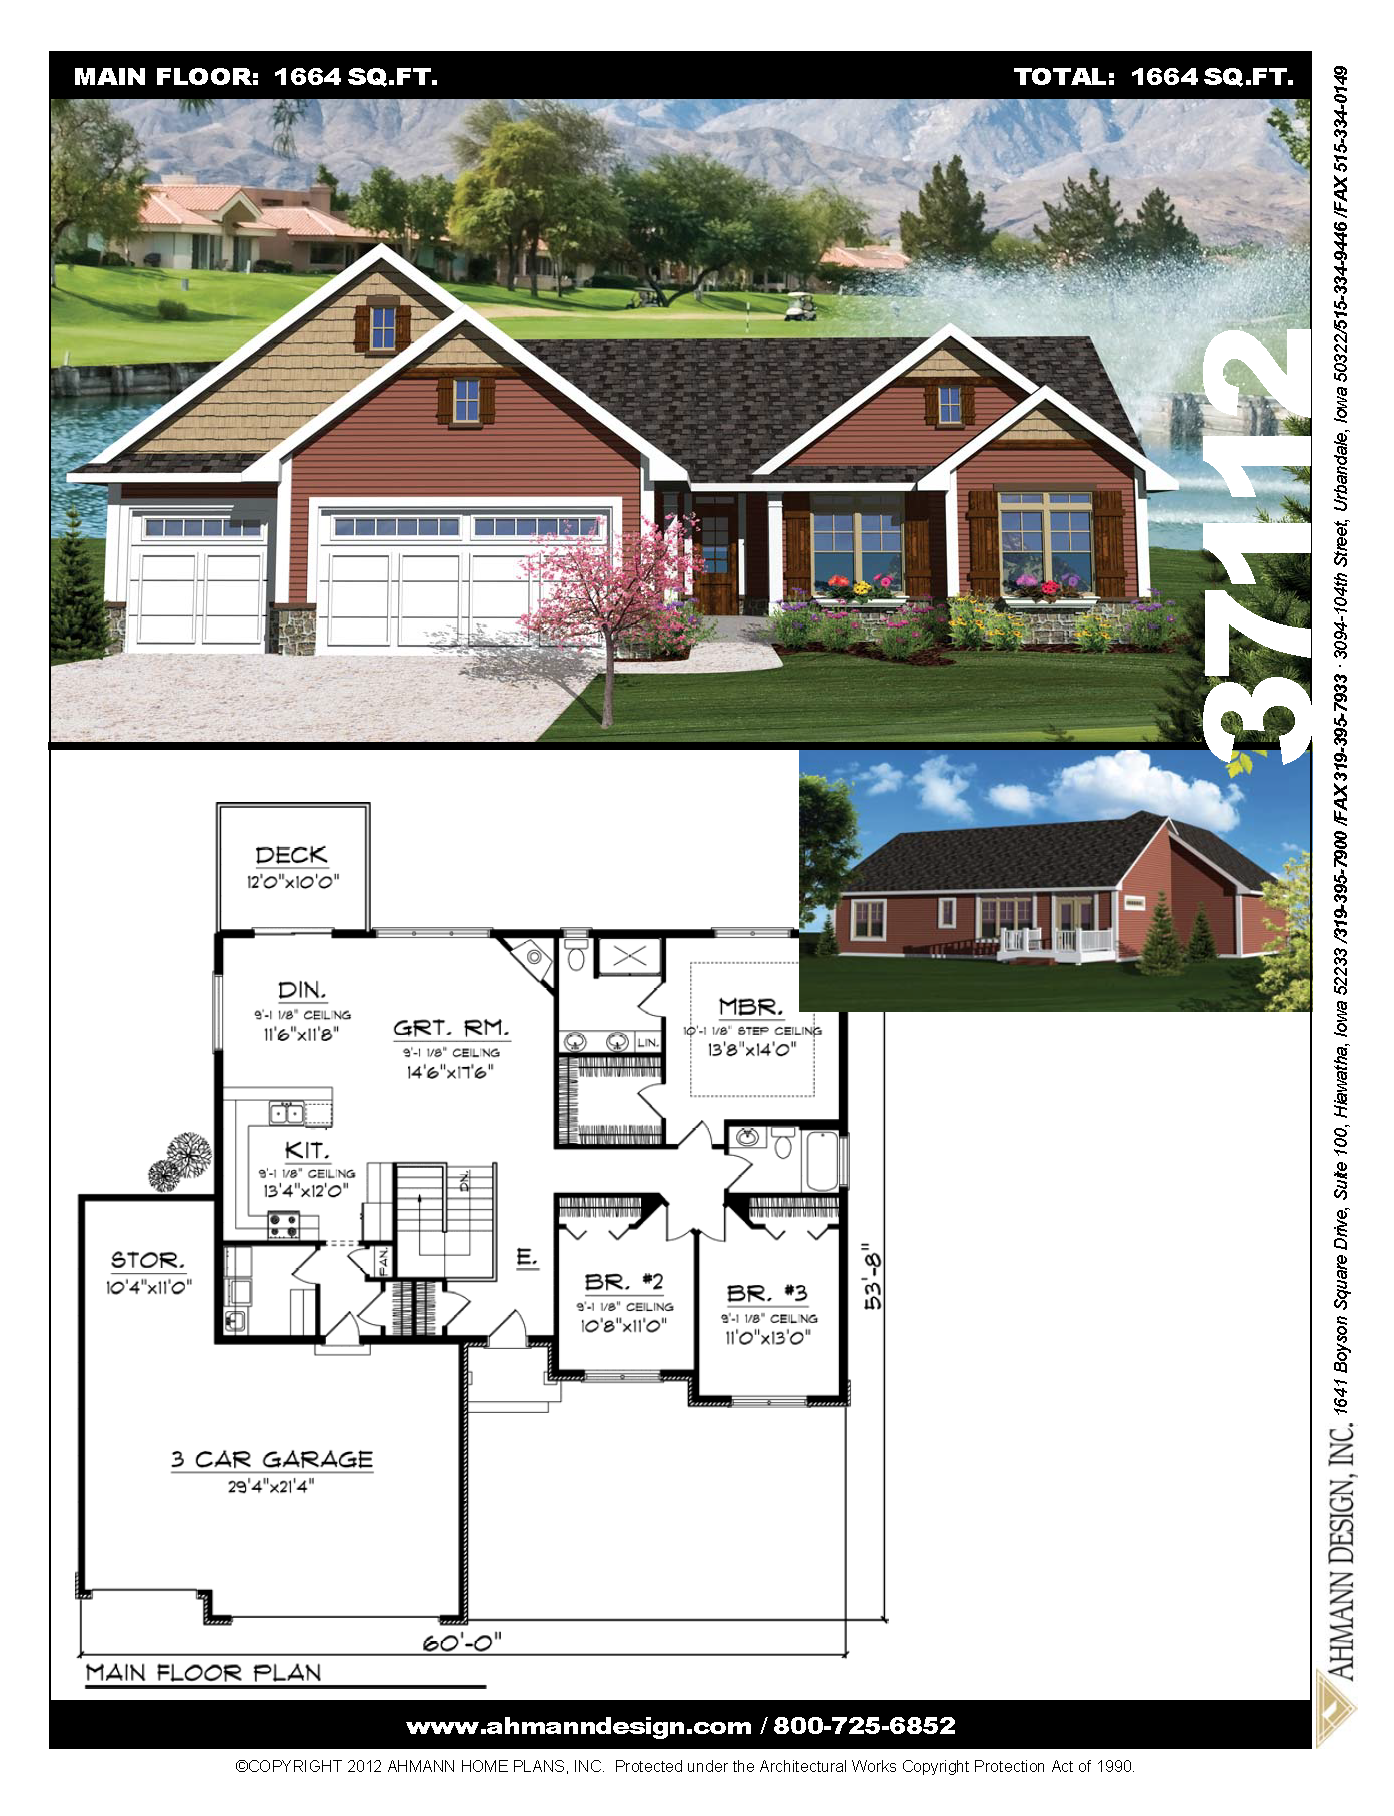 37112 House Design House Plans Architecture Drawing